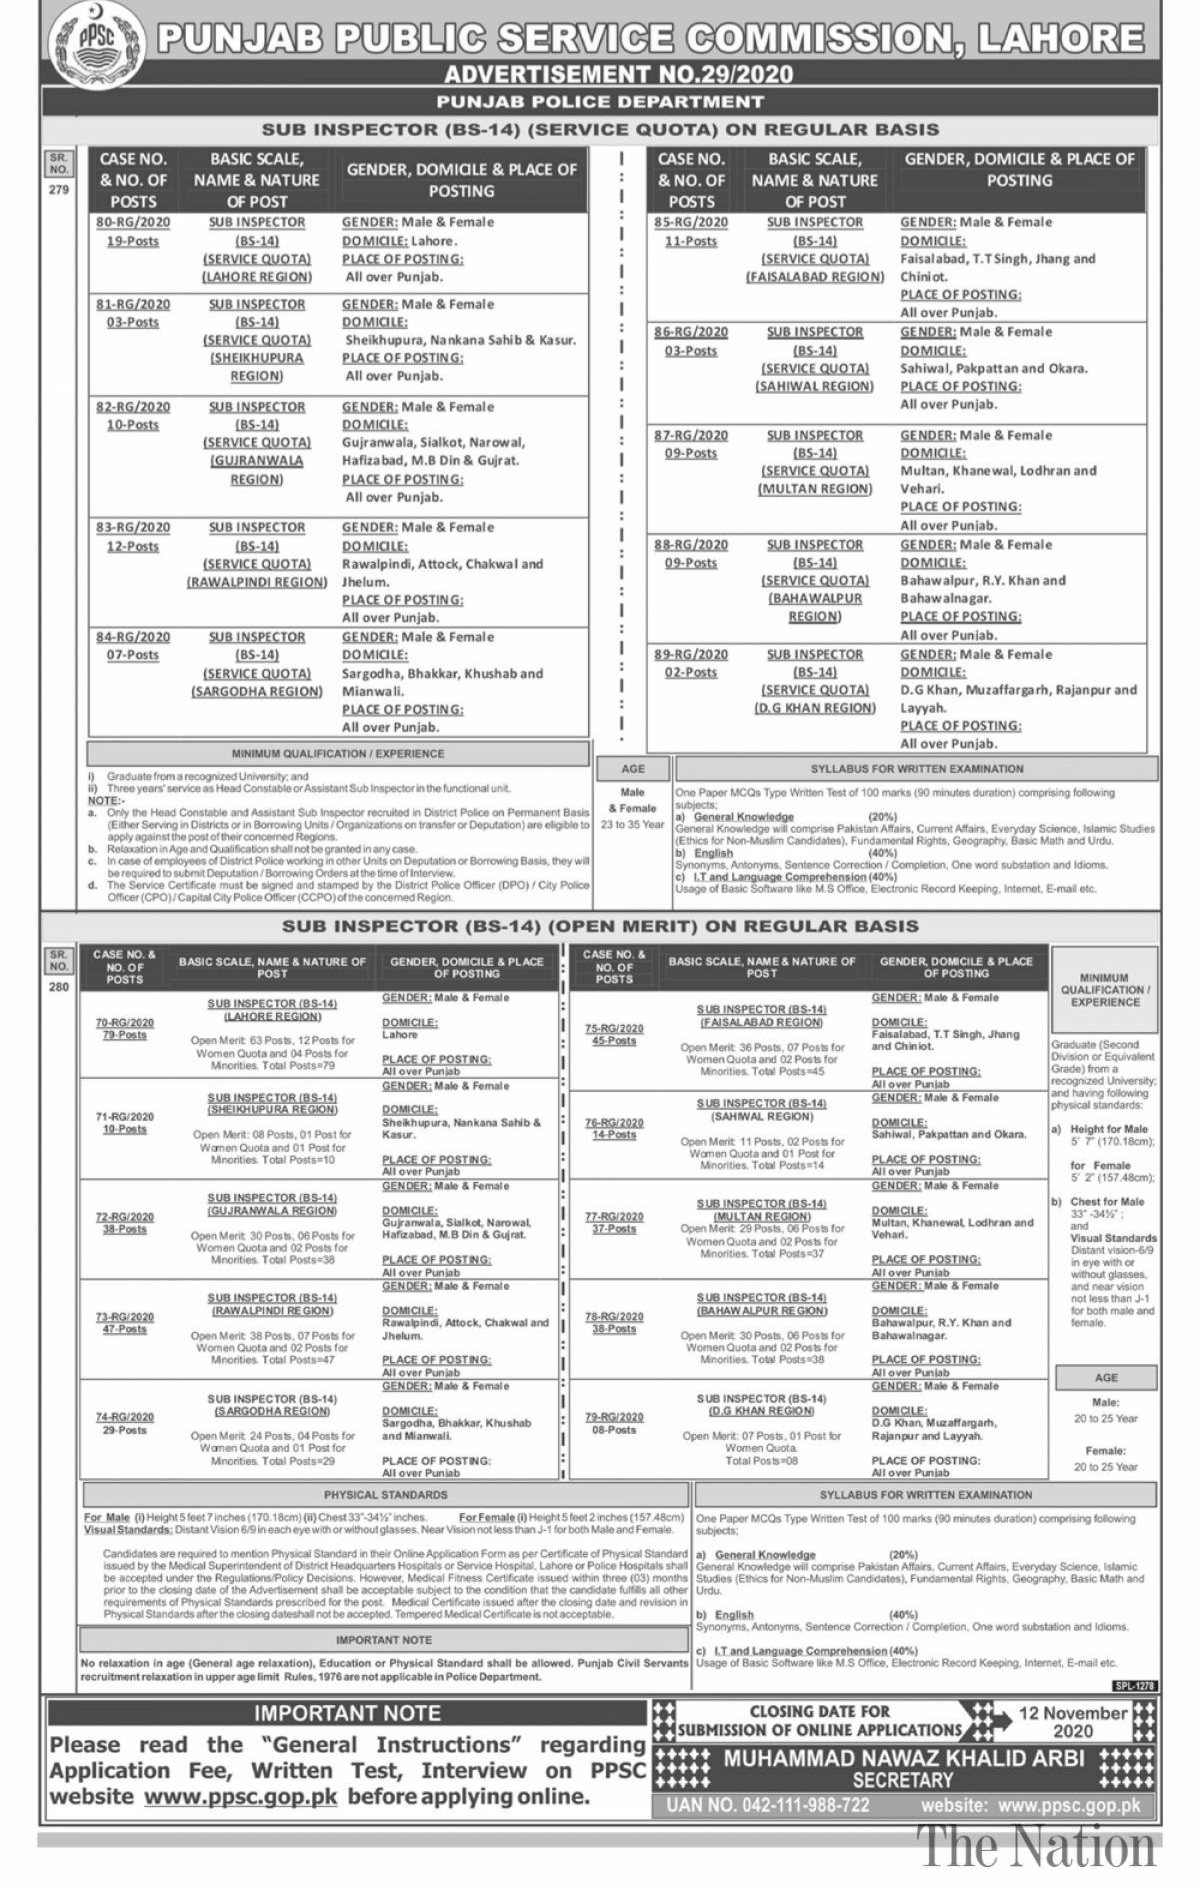 Sub Inspector Jobs in Punjab Police PPSC Apply Online Latest Punjab Public Service Commission